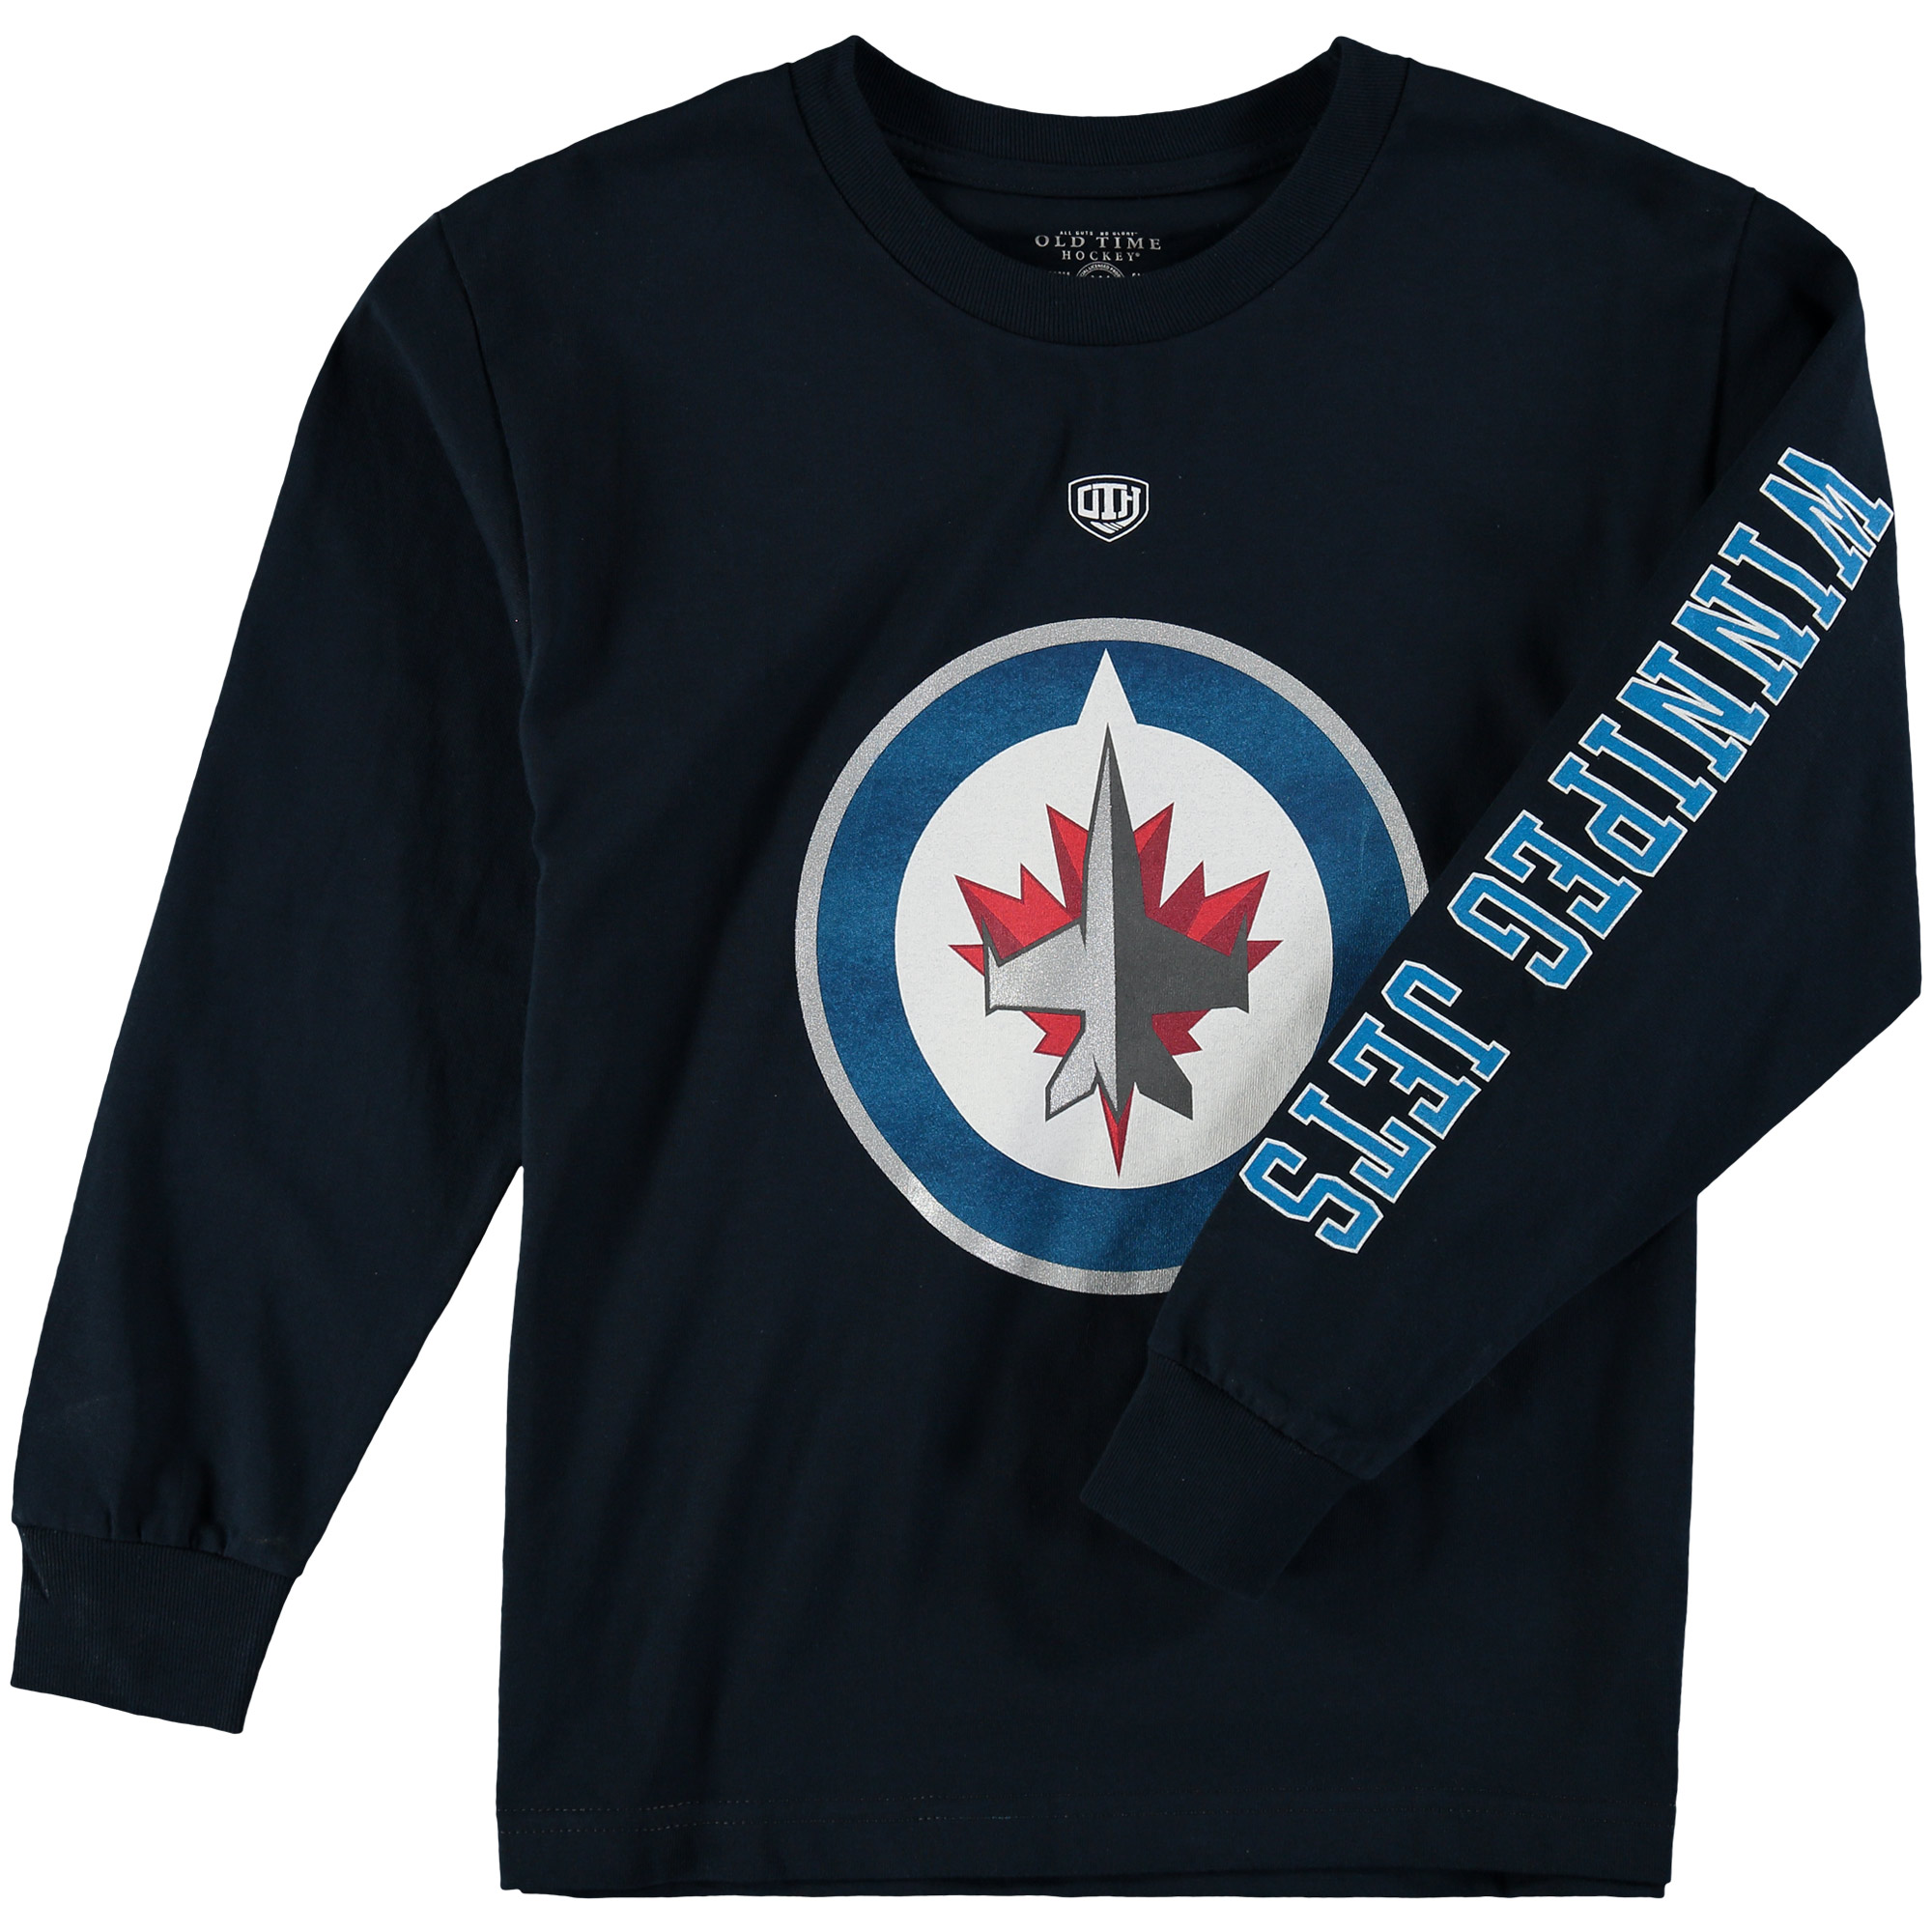 Winnipeg Jets Old Time Hockey Youth Two Hit Long Sleeve T-Shirt Navy by Old Time Hockey